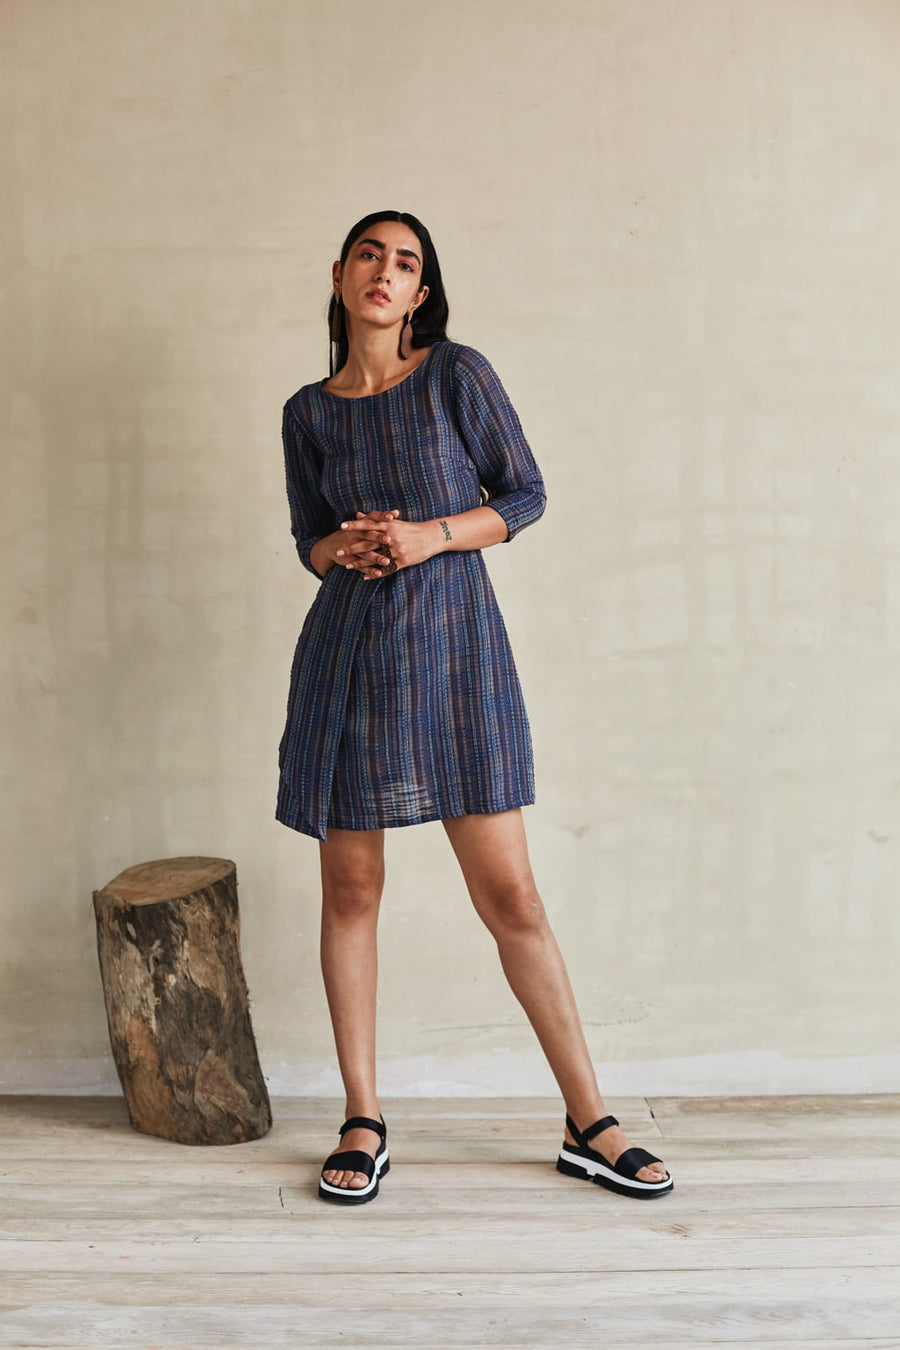 Power Dressing Formal Dress - Ethical made fashion - onlyethikal